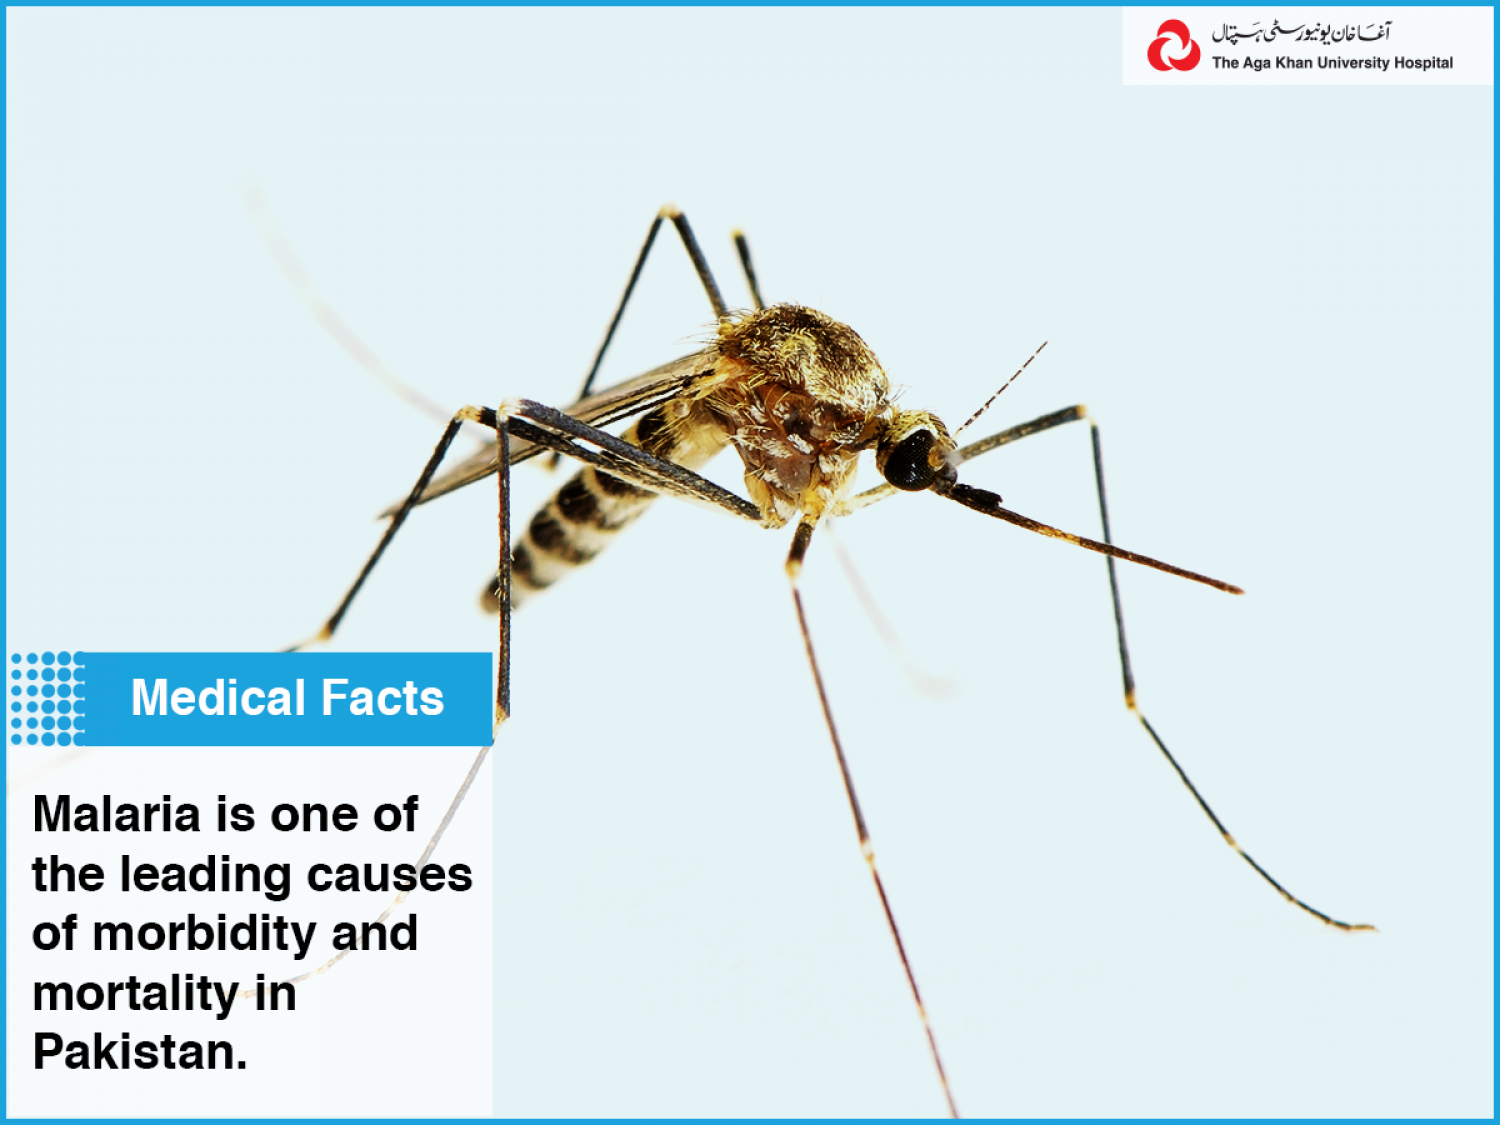 Malaria is one of the leading causes of morbidity and mortality in Pakistan. Infographic